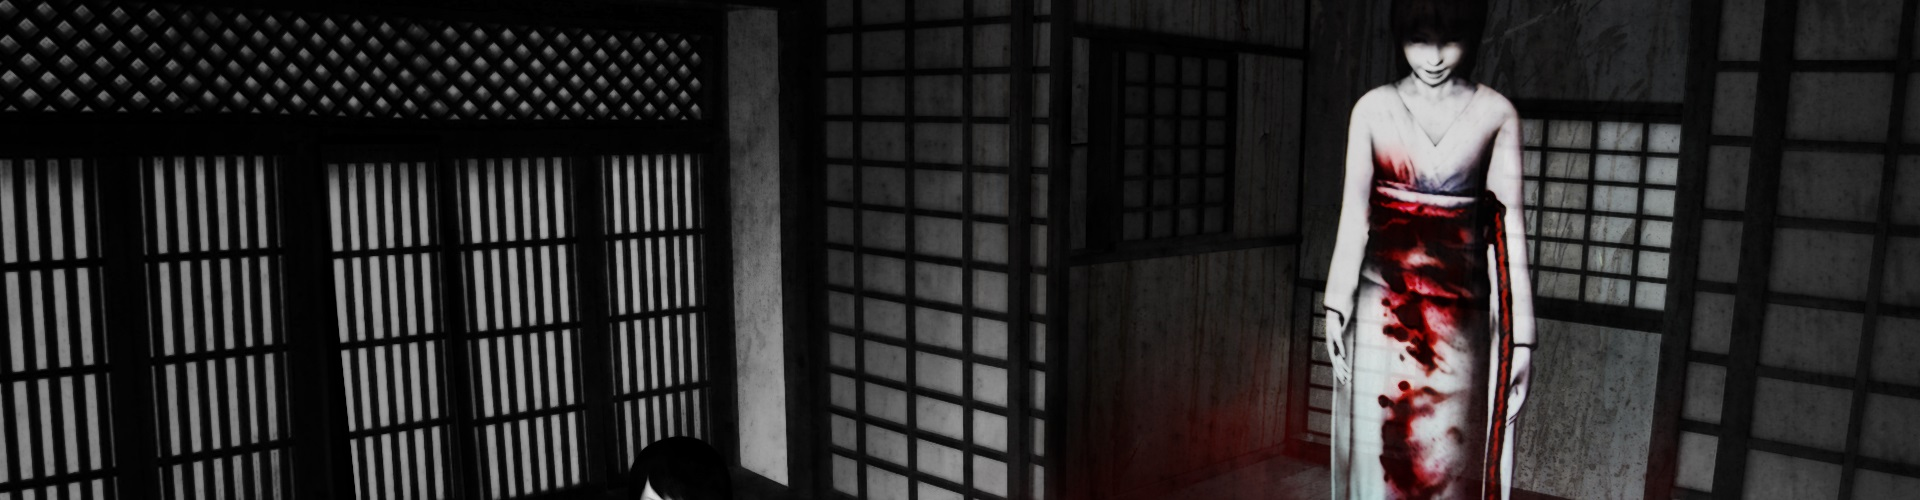 Fatal Frame is One of The Scariest Game Series of All Time - We Want ...